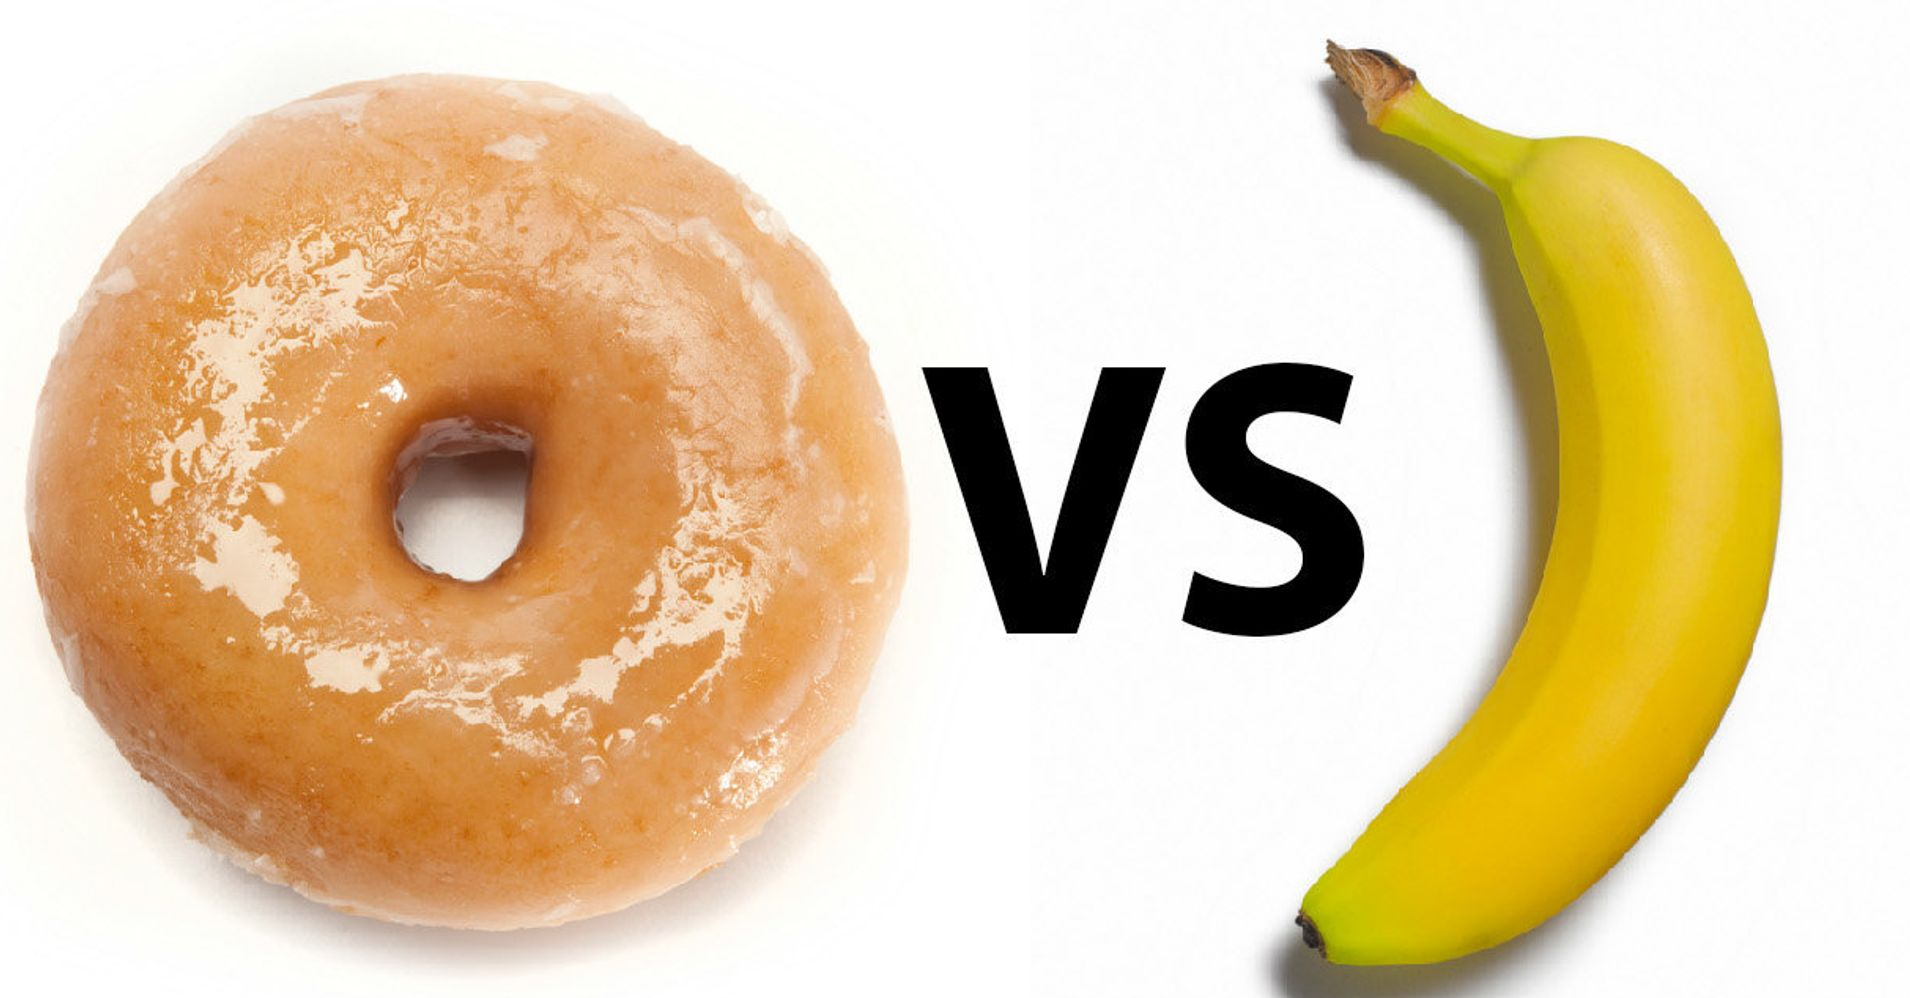 13 Breakfast Items With More Sugar Than A Doughnut